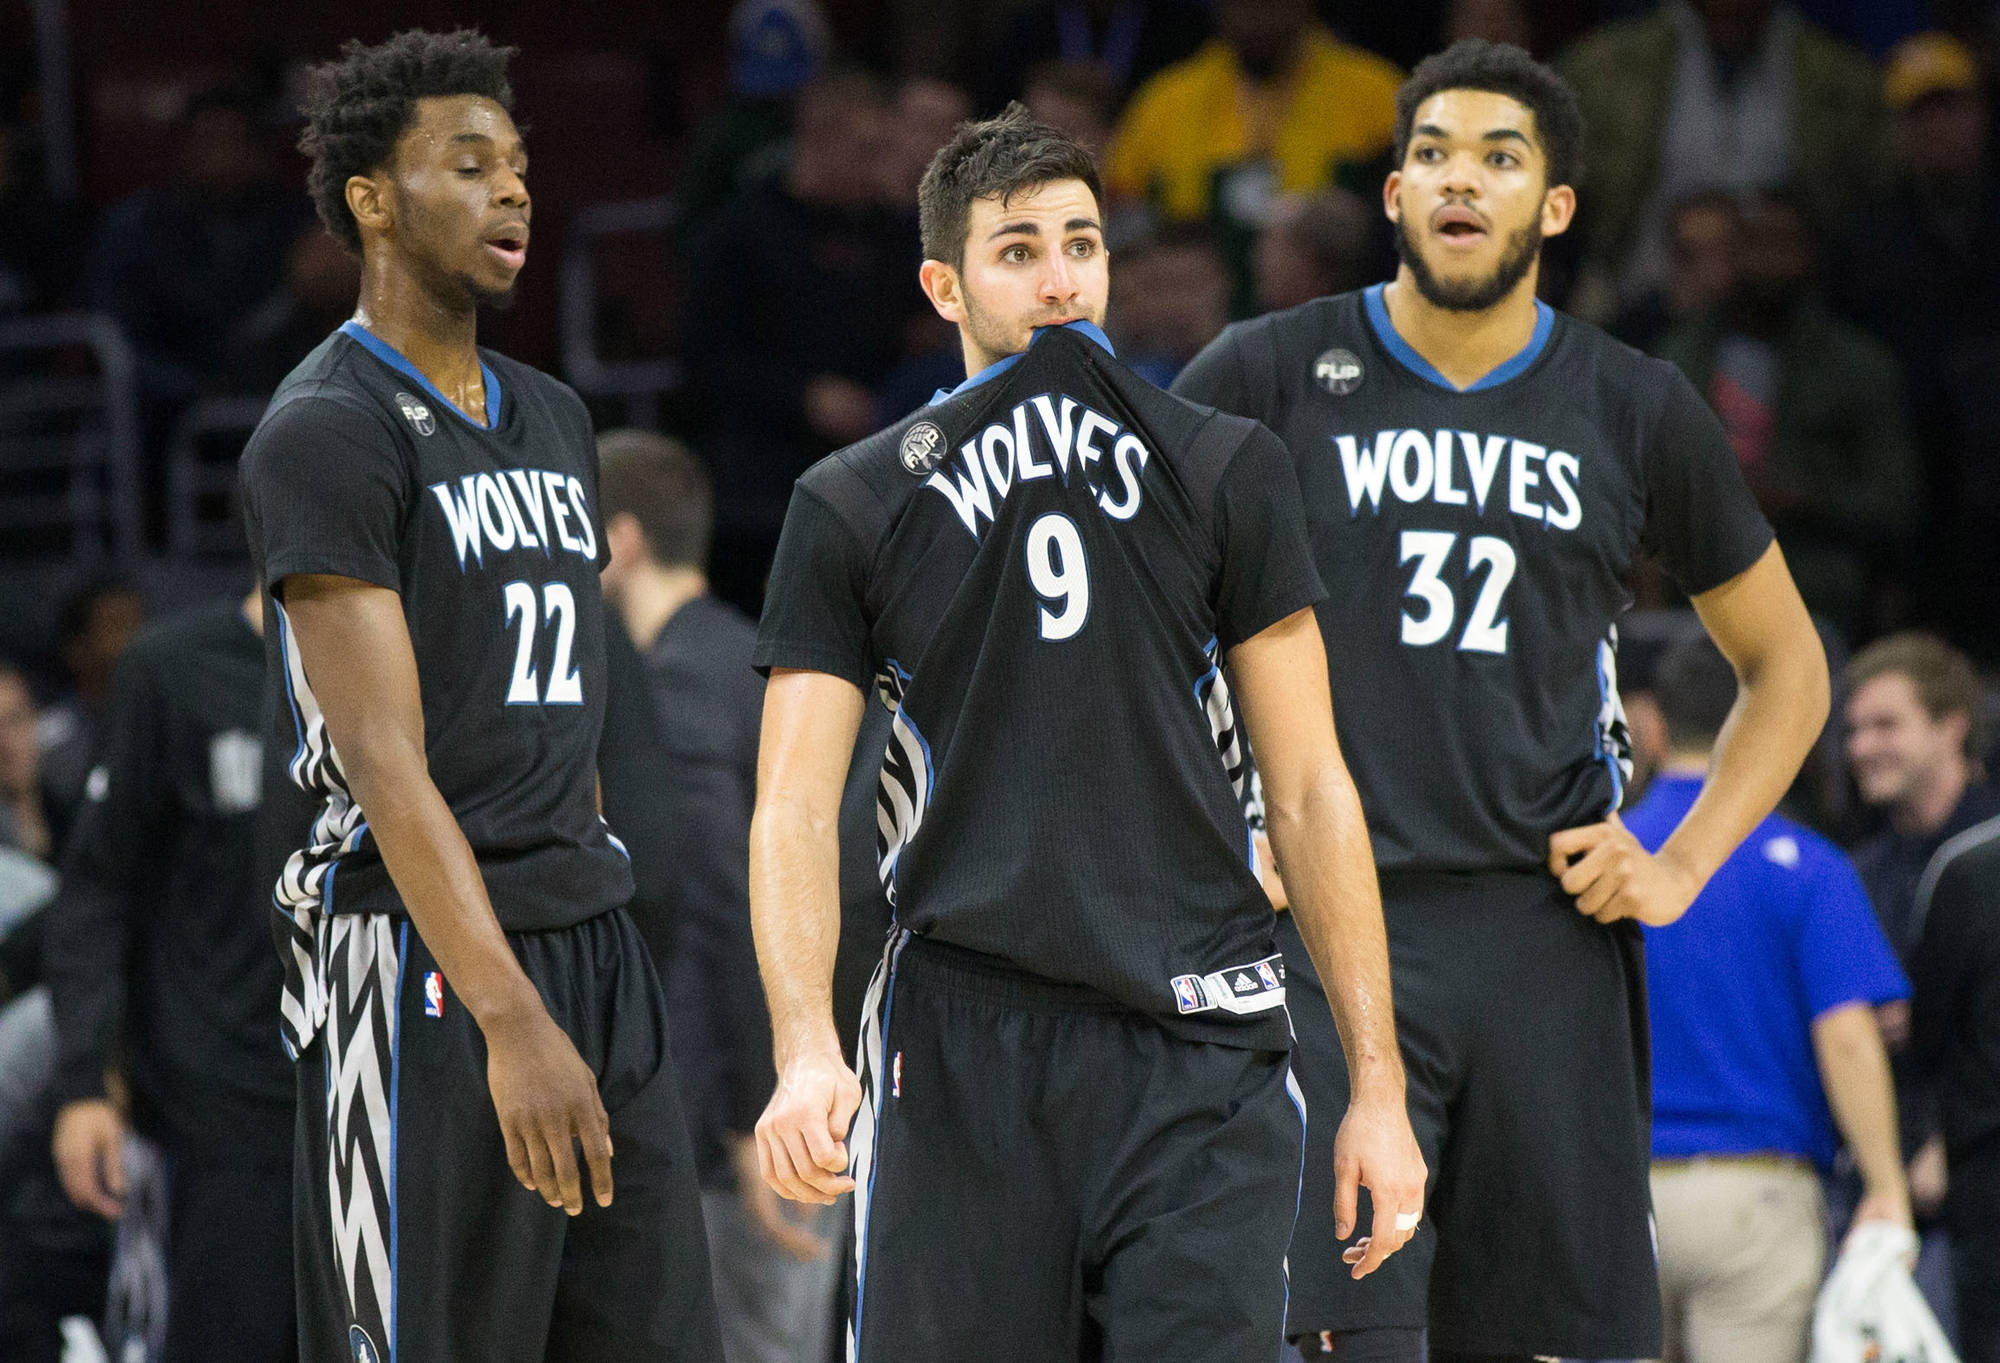 A Positive Spin on the Frustrations of being a Wolves Fan